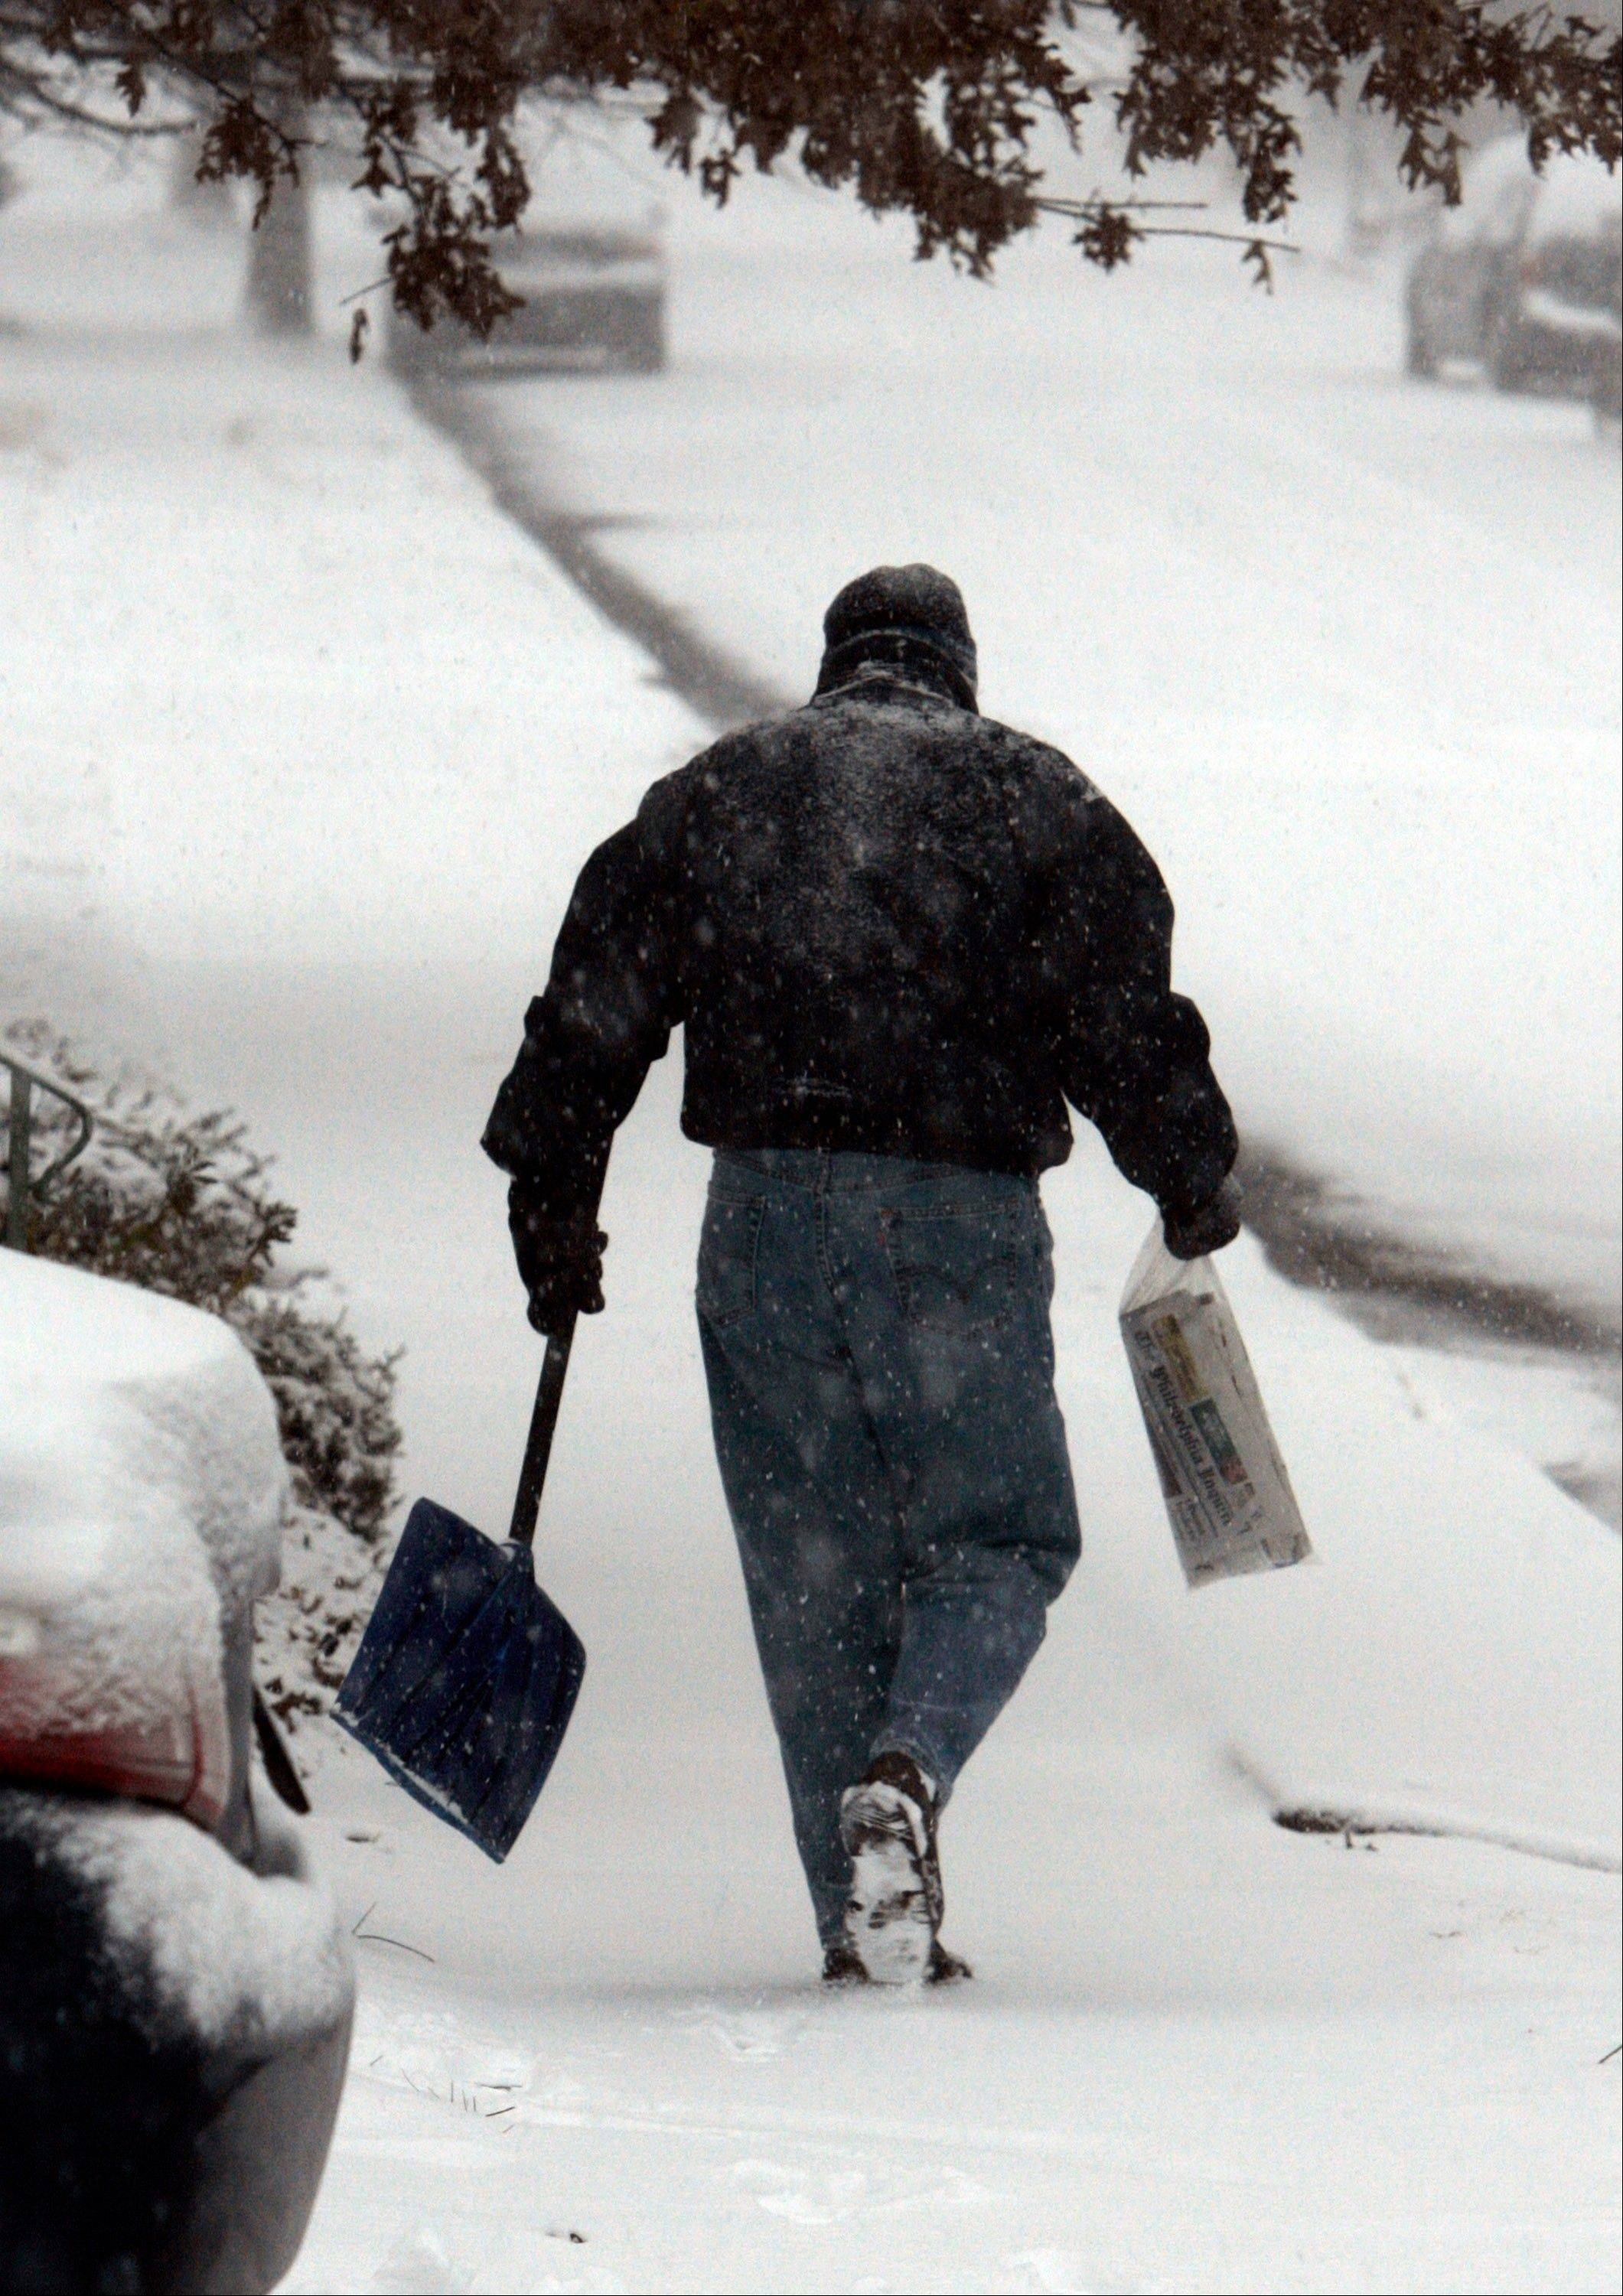 Bill Winterle carries his neighbor�s newspaper to her doorstep while shoveling his driveway during a major winter storm in Havertown, Pa. Make sure packages and newspapers aren�t sitting in your driveway day after day while you�re away for the holidays will help deter thieves.